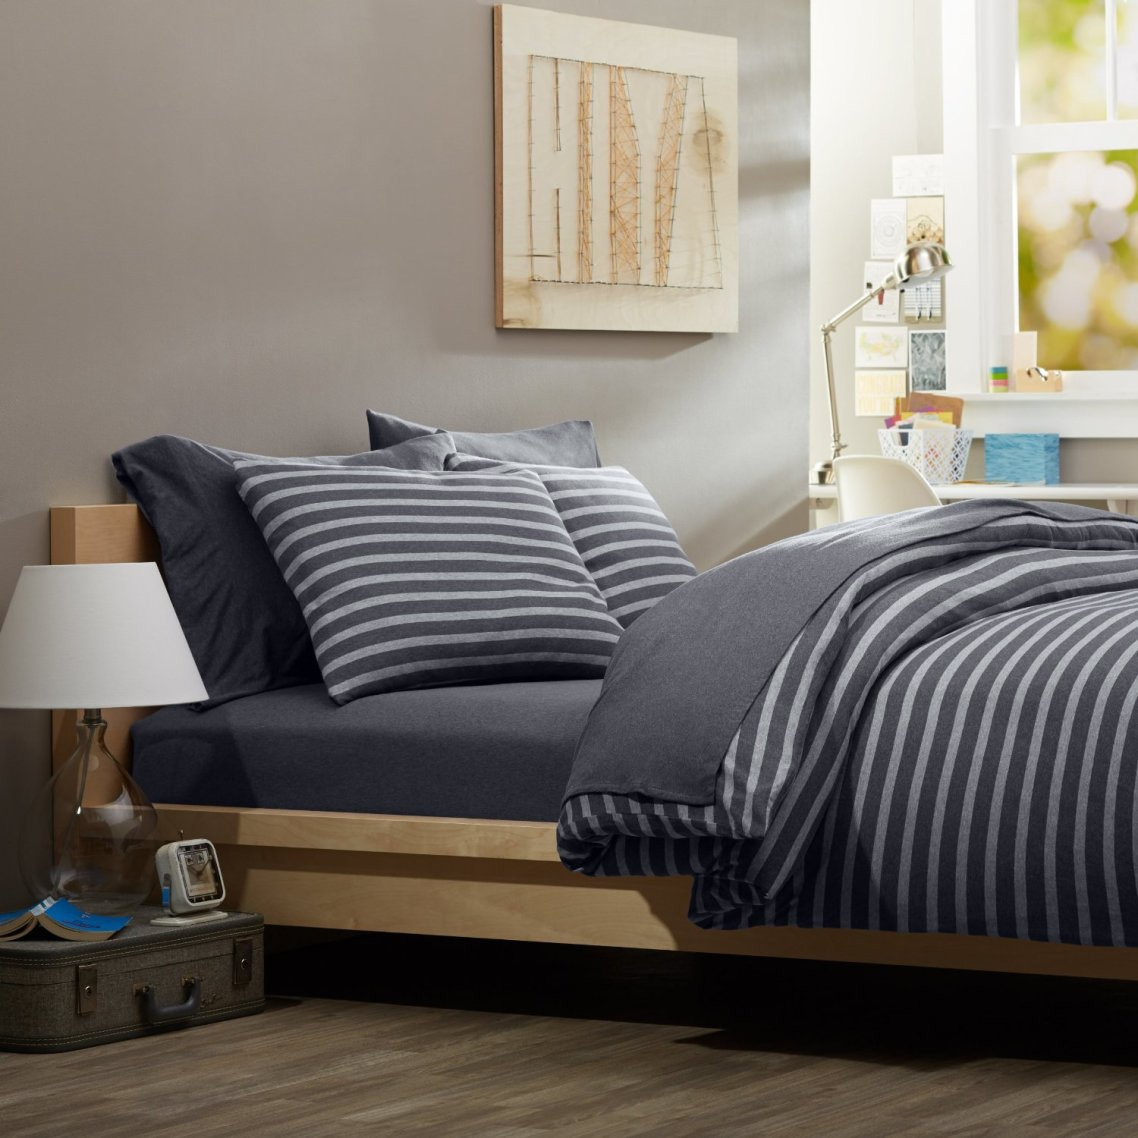 Image of: Masculine Blue and Grey Strip Bedding